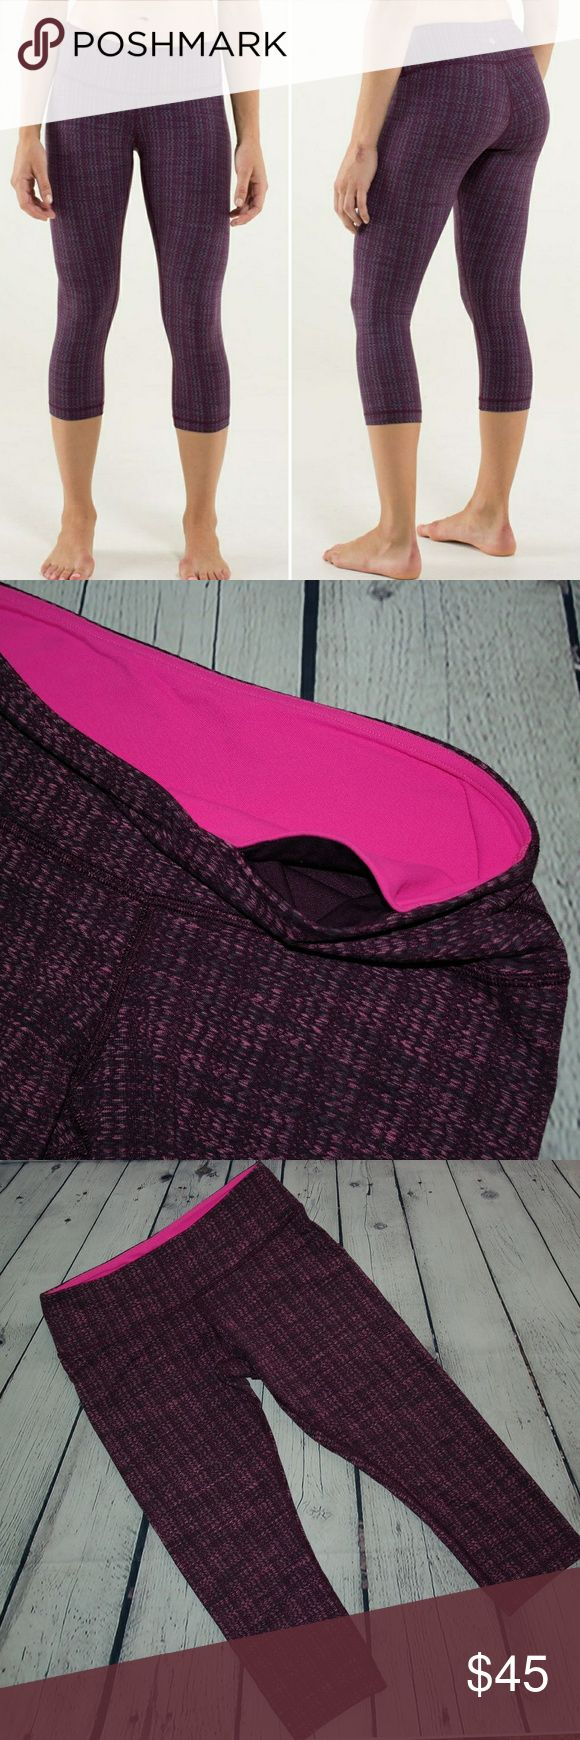 """Lululemon Wunder Under Crop Knit Texture Ziggy 6-8 The second-skin fit of these Wunder Under is out of this world. These are the textured knit-like Luon material, amazing! They are in good pre-loved condition. No stains/holes. Some piling inner thigh area. No tag or size dot, I believe they are a 6 but please see measurements.  14"""" waist band 21"""" inseam  four-way stretch  wide, soft waistband is anti muffin top  chafe-resistant flat seams  stash your keys and gym card in the hidden waistband…"""